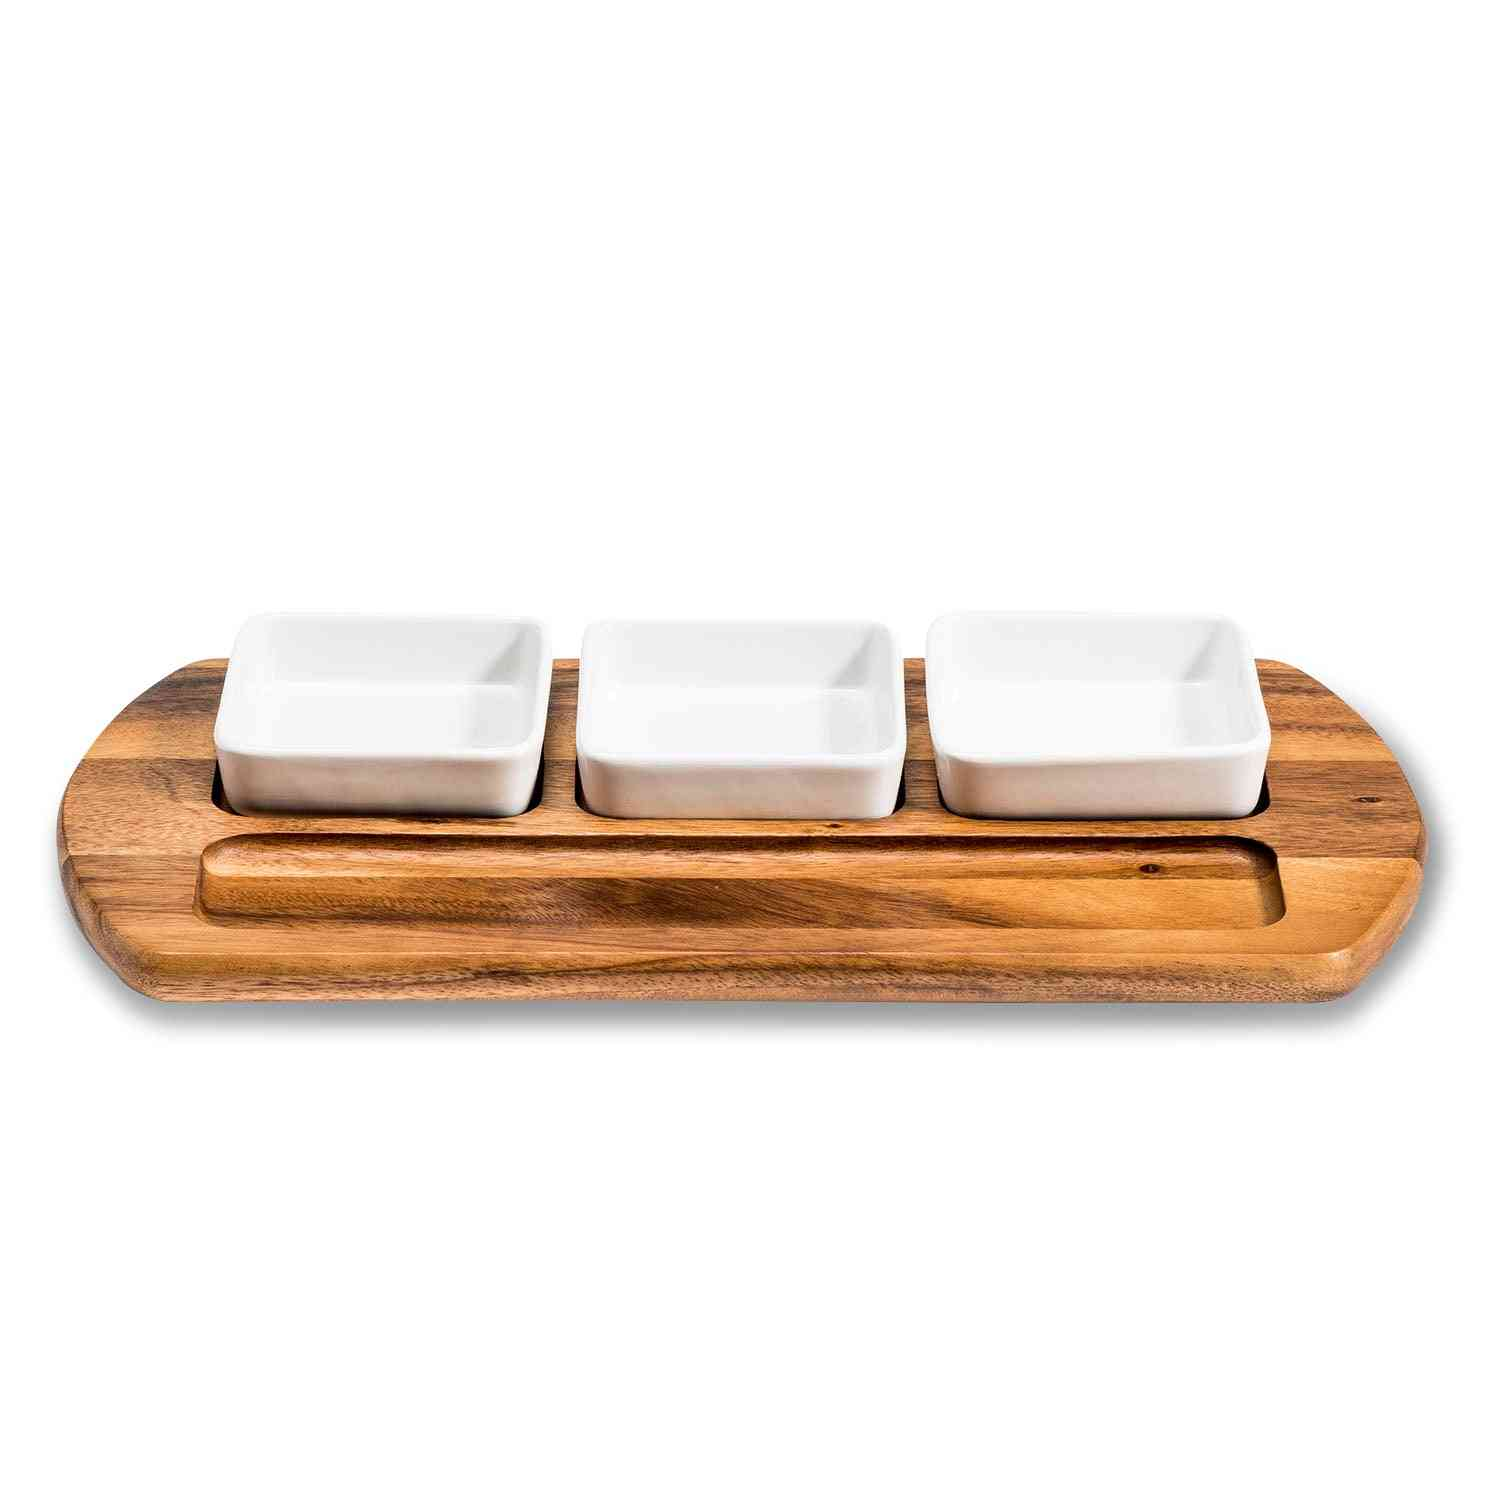 Charcuterie/ Serving Tray W/ 3 Square Ceramic Bowls